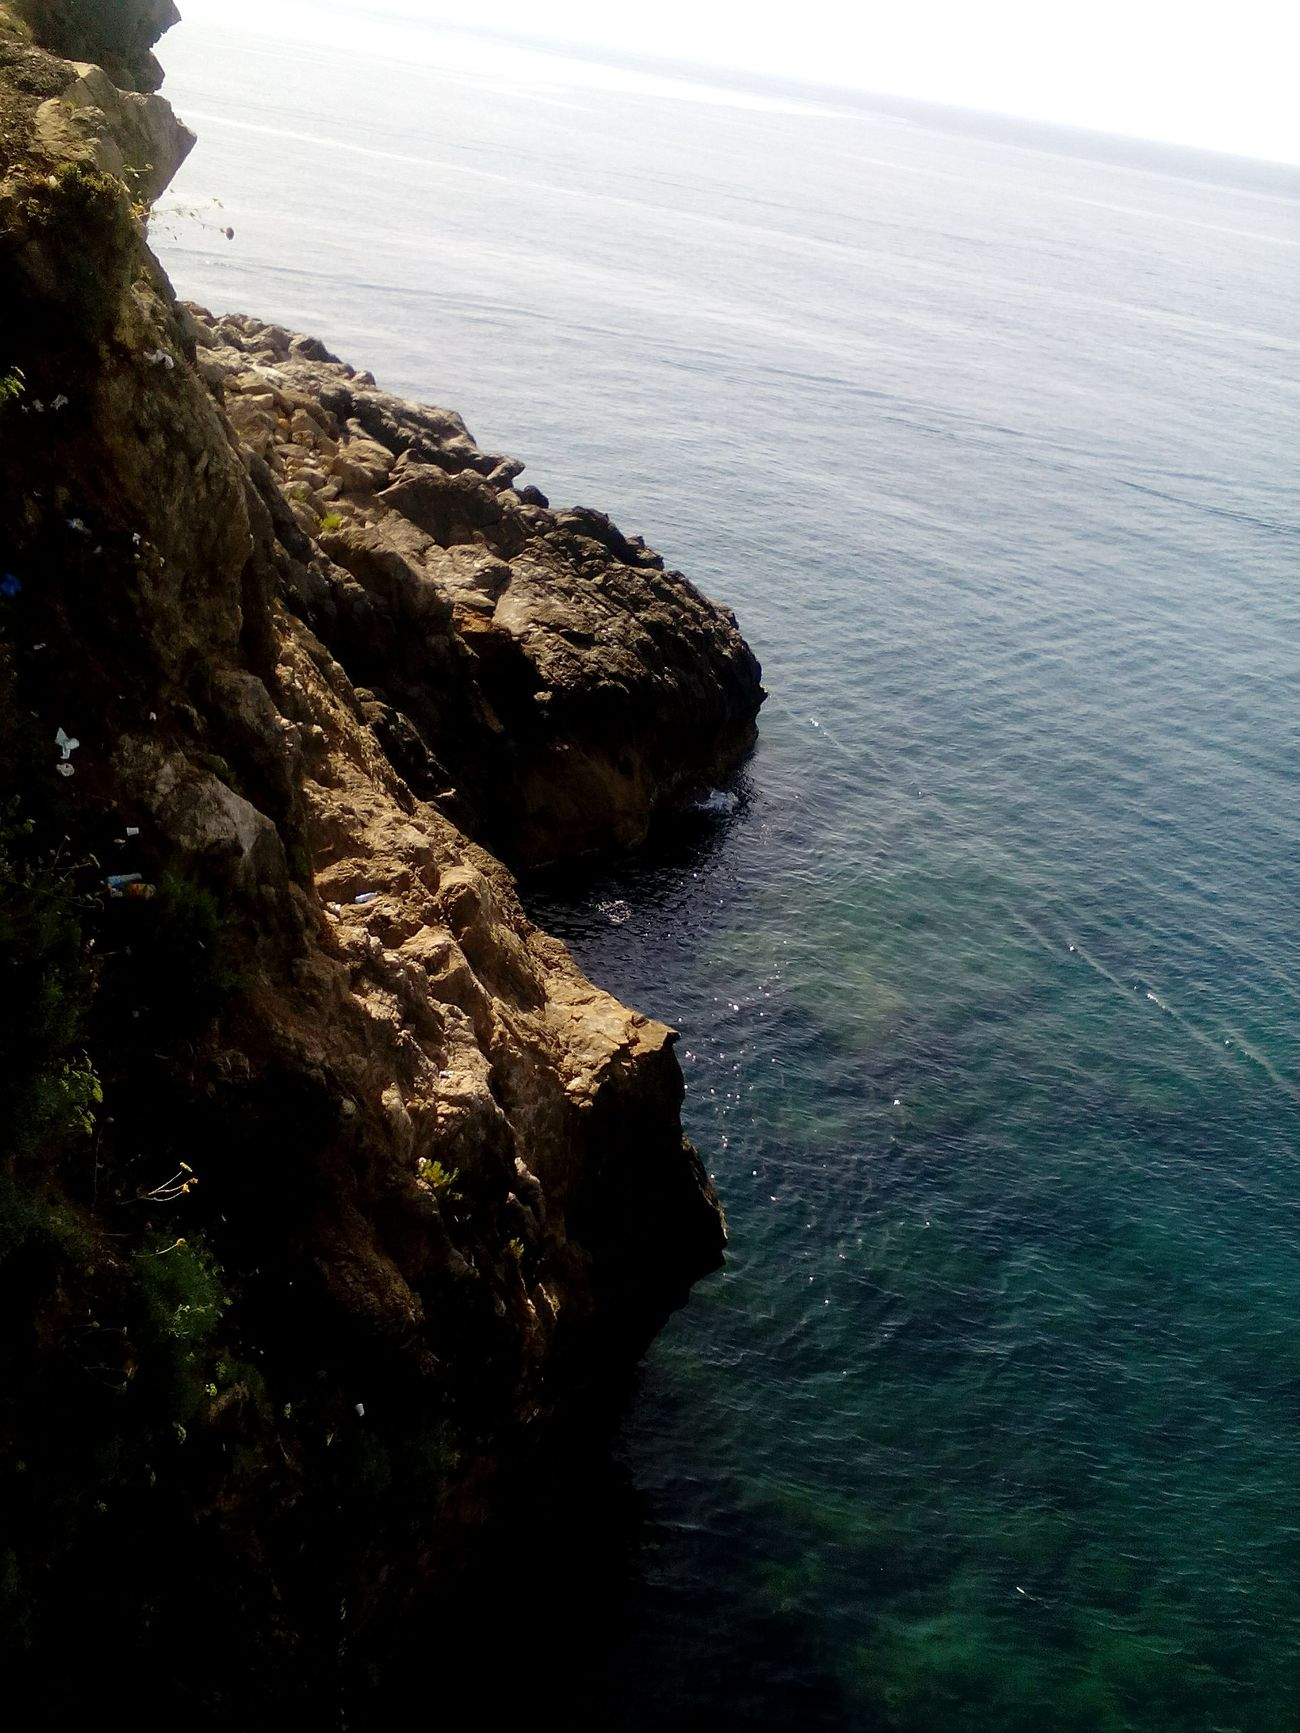 Summer Views Algeria Jijel Algérie Ziamamansouriah LES Grottes Beautiful Nature Beach Taking Photos <3